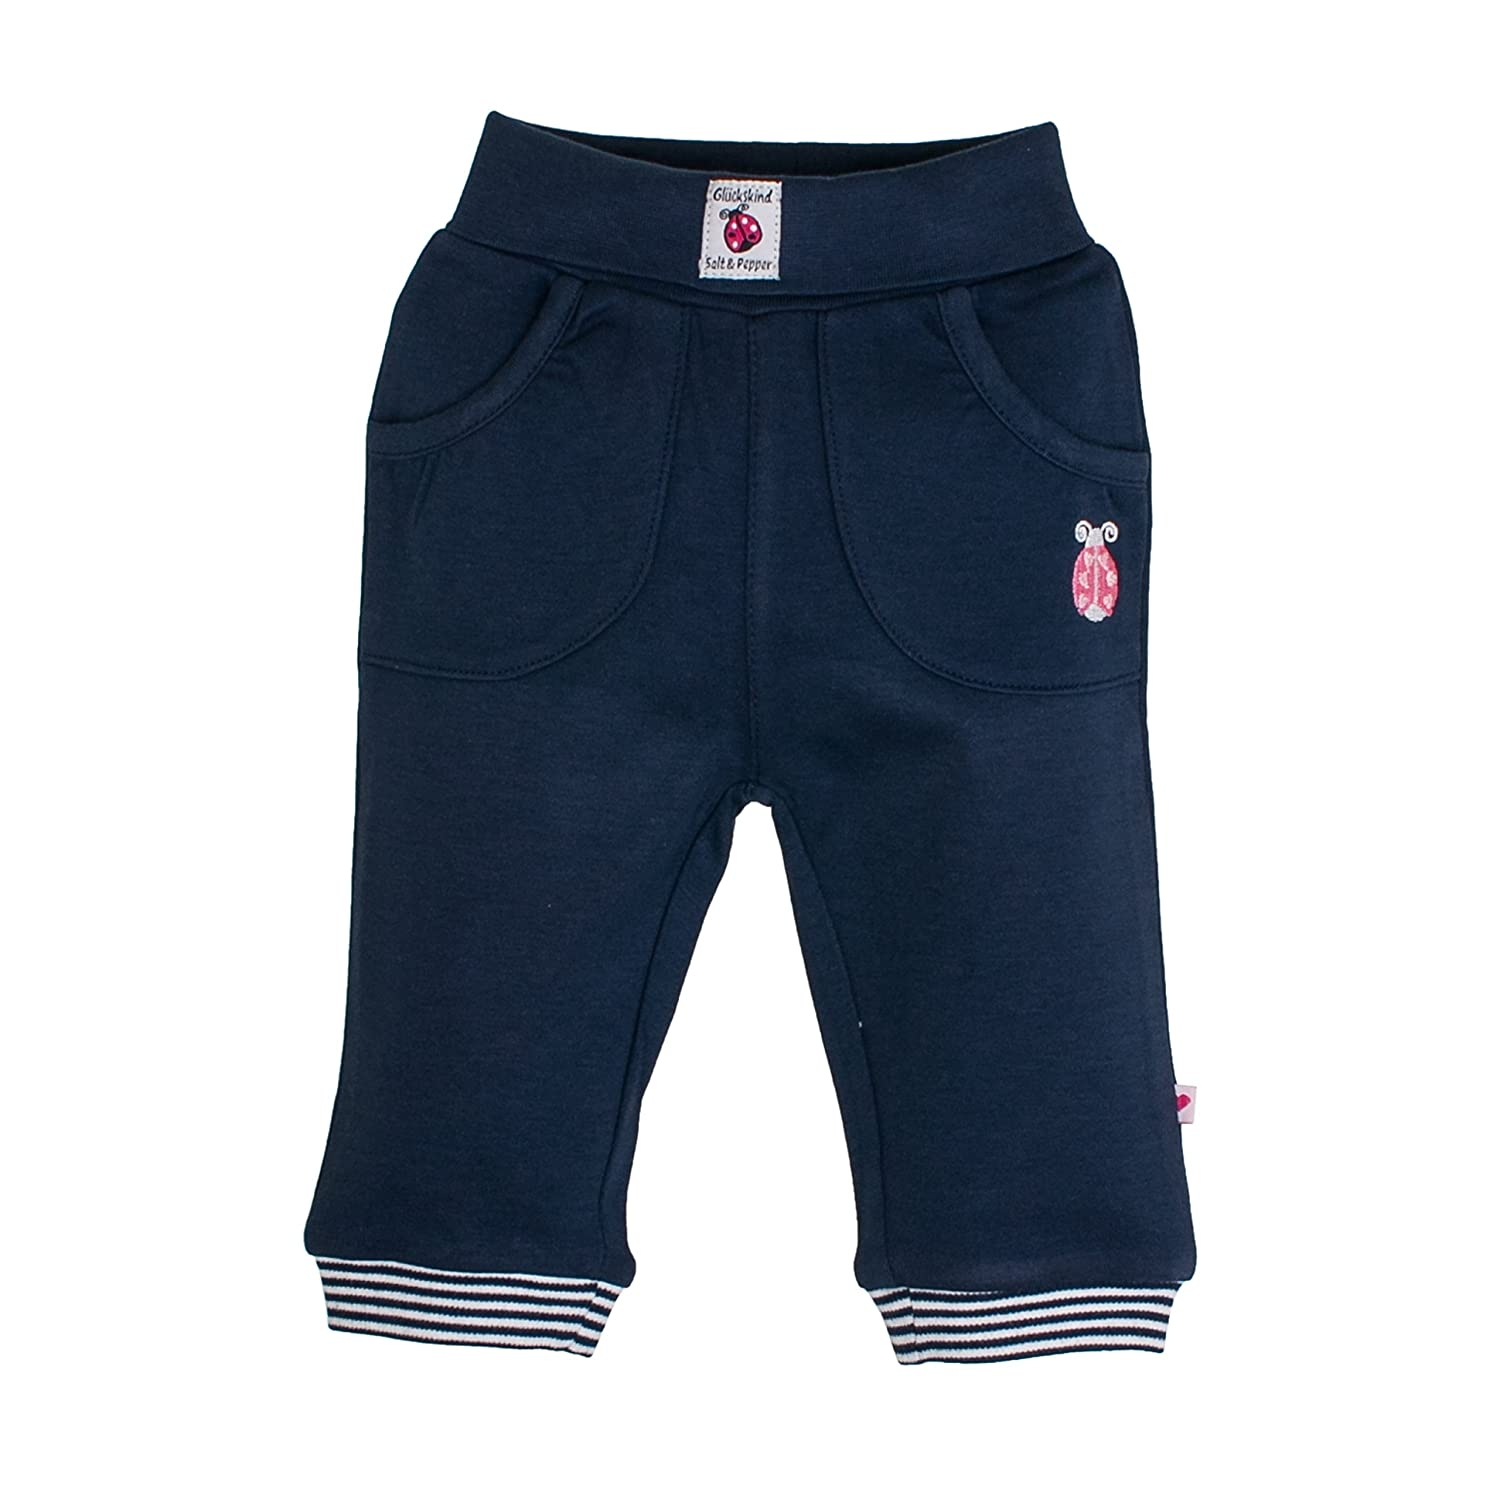 Salt & Pepper NB Trousers Glück Uni, Pantalon Bébé Fille SALT AND PEPPER 83215205